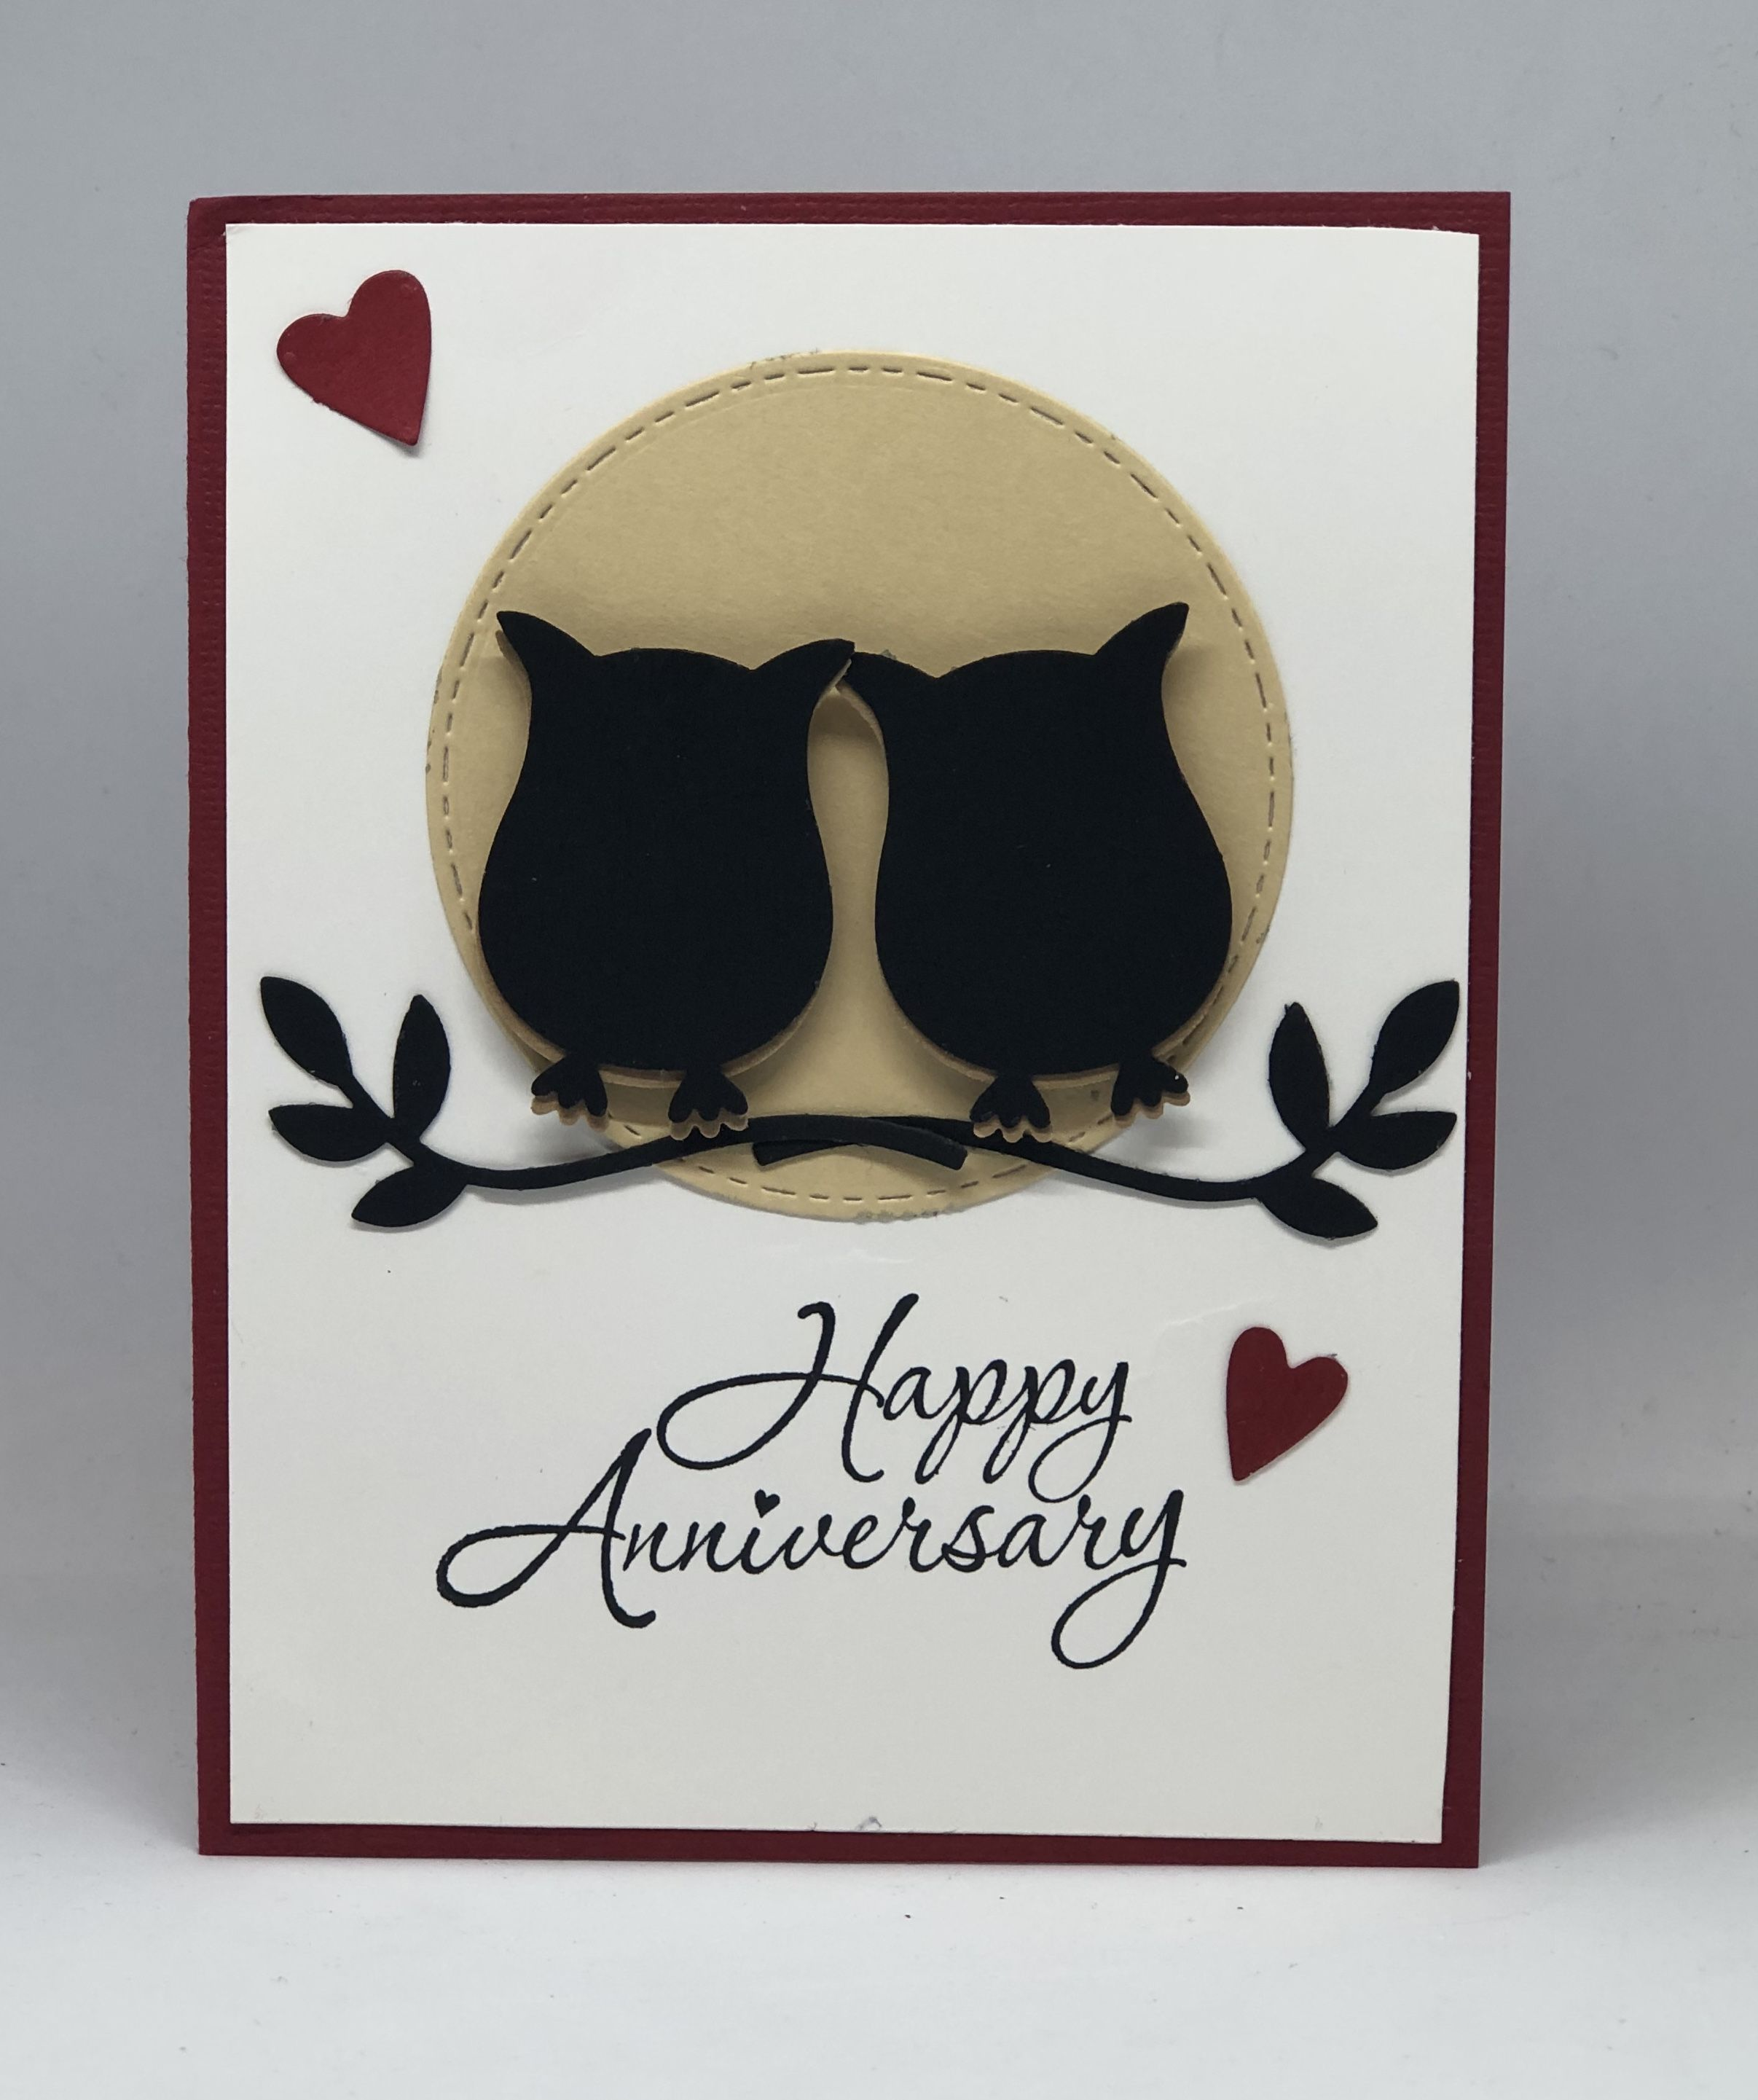 Anniversary Cards Happy Anniversary Love Card Owl Couple Friends Family Couples Card Greeting Cards Handmade Greeting Card Shops Handmade Greetings